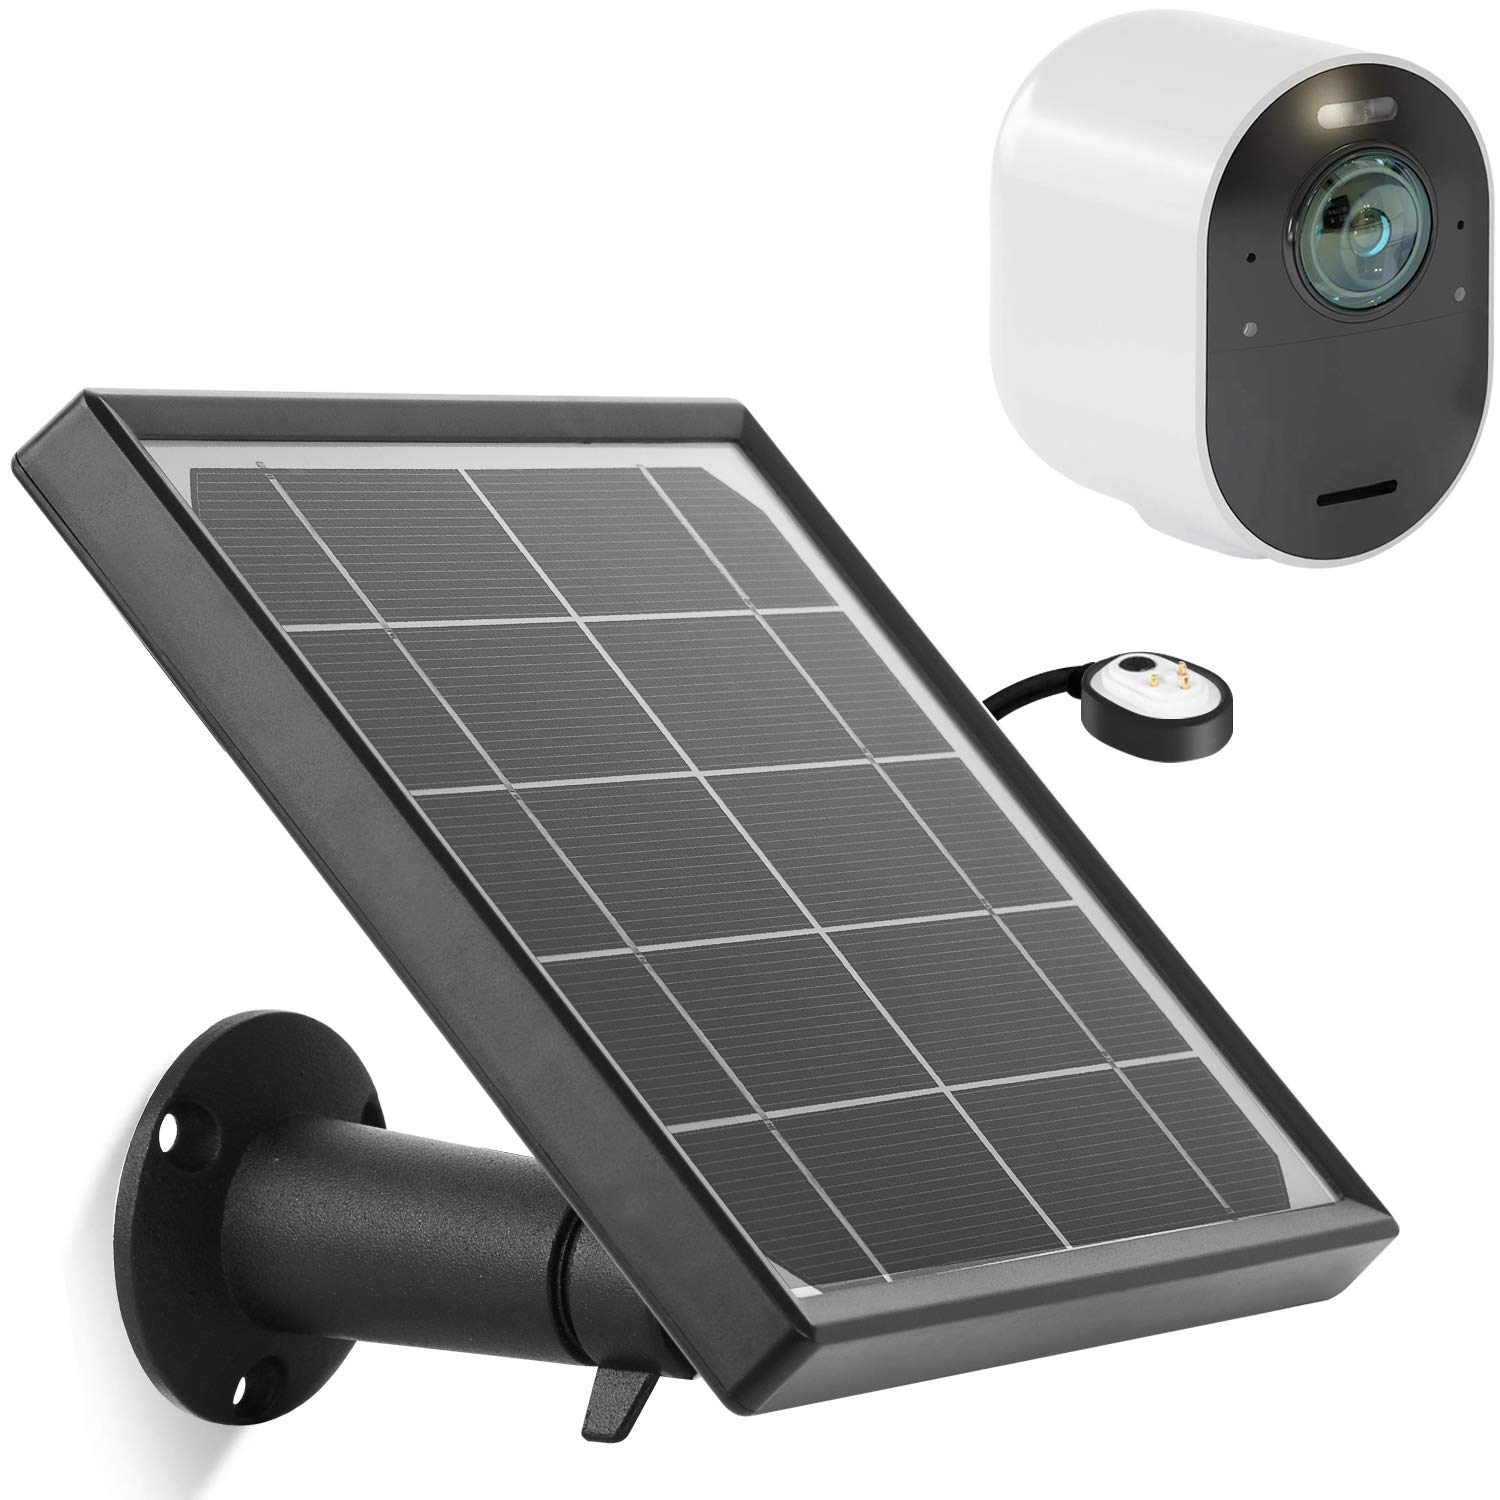 Solar Panel with Power Outdoor Magnetic Charging Cable for Arlo Ultra, Waterproof Charge Continuously for Your Arlo Surveillance Camera (Black)